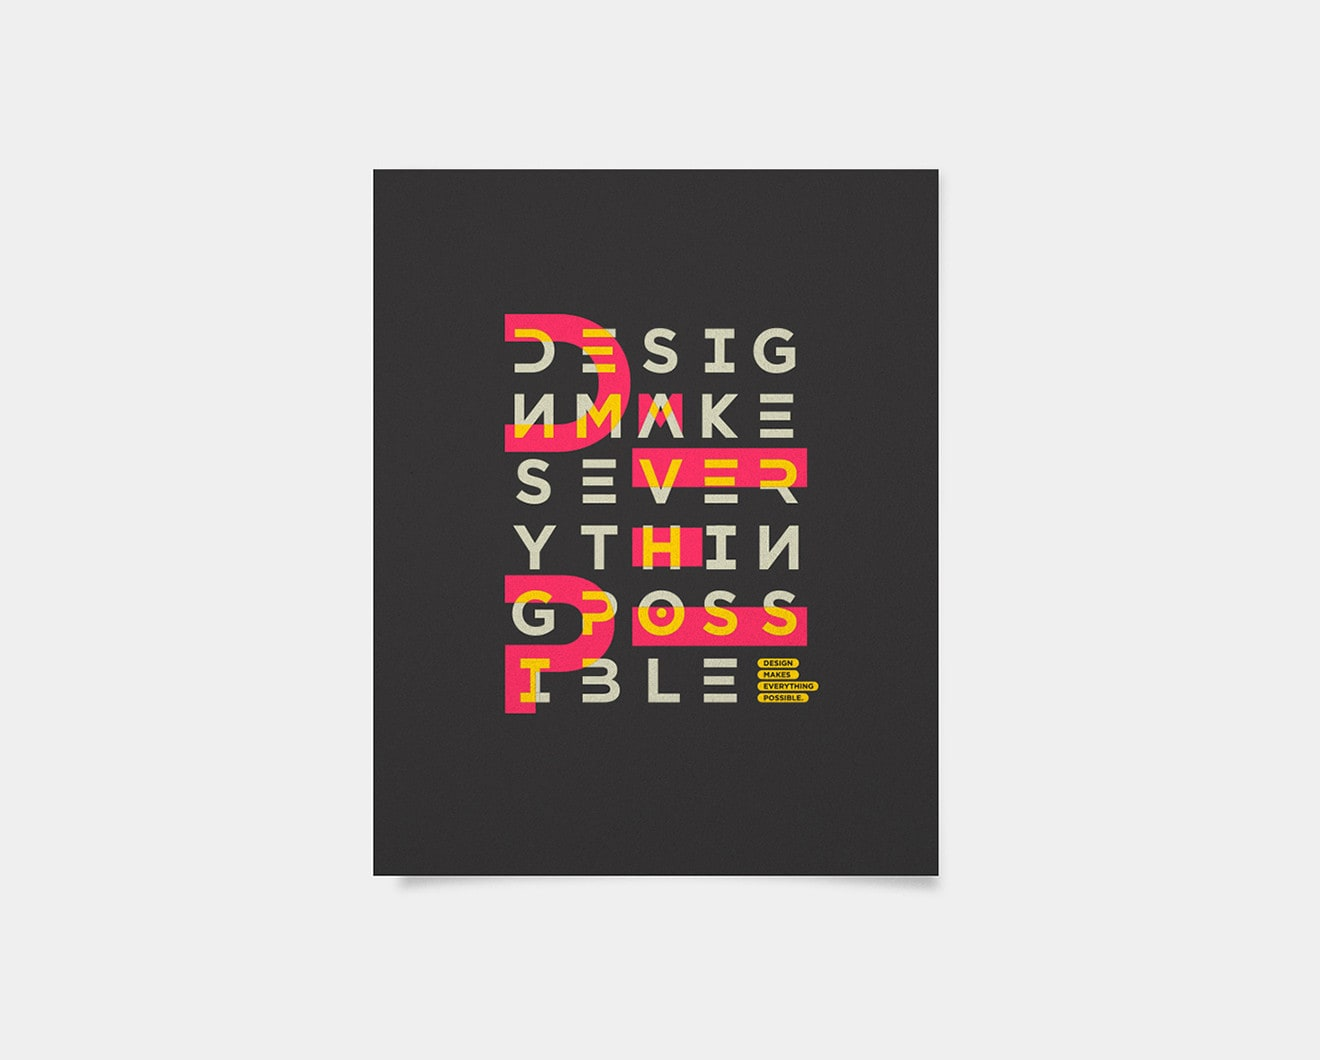 Design Makes Everything Possible - Mike Kus